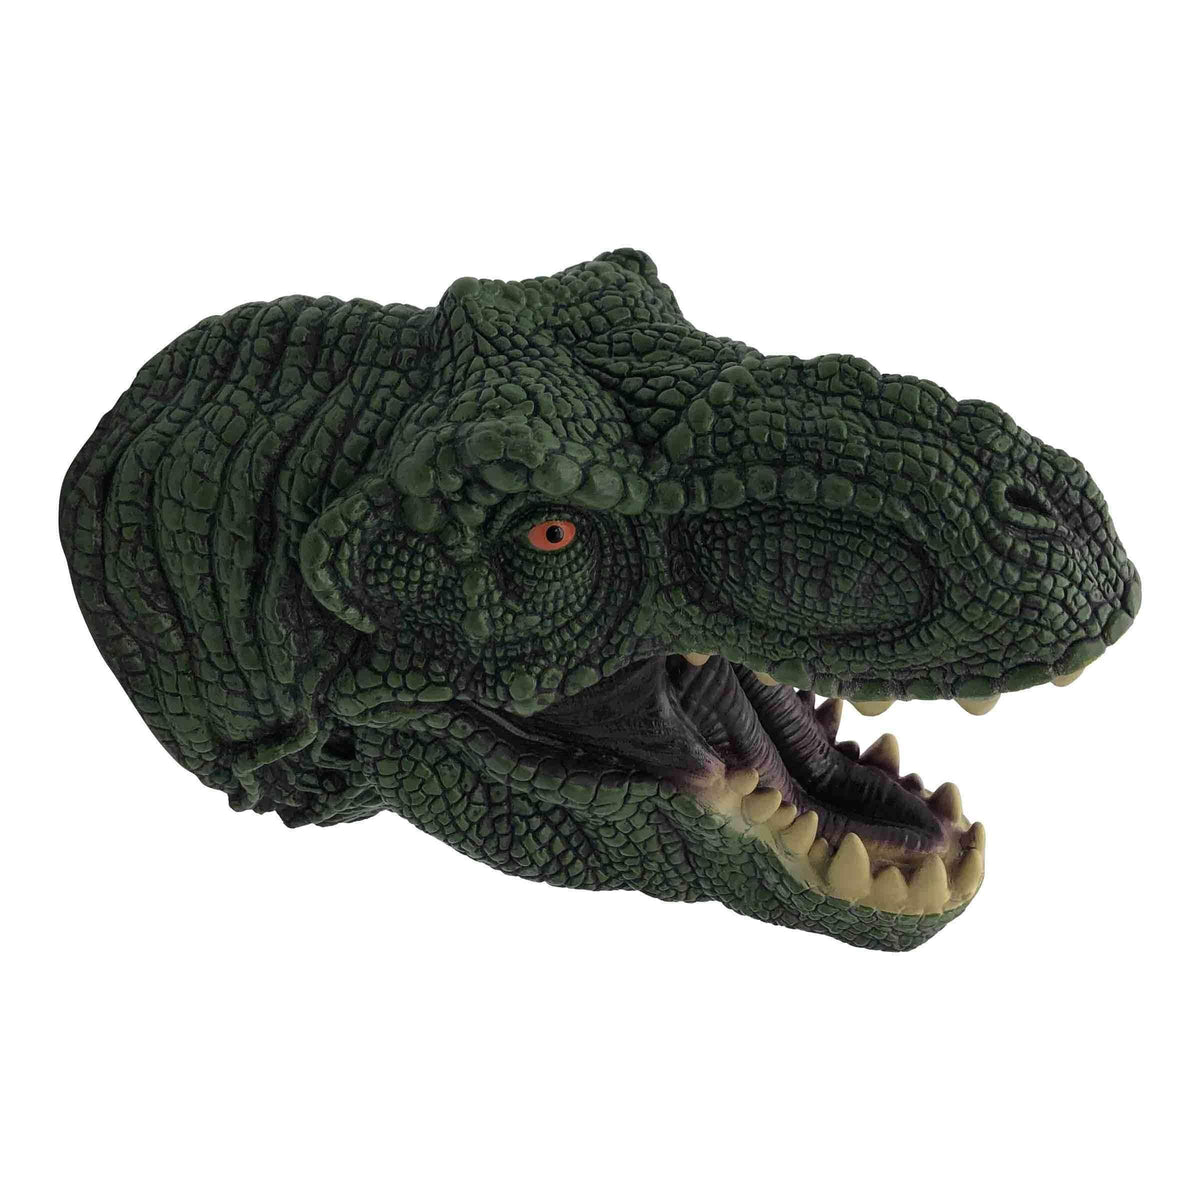 Realistic Dino Hand Puppet - T-Rex